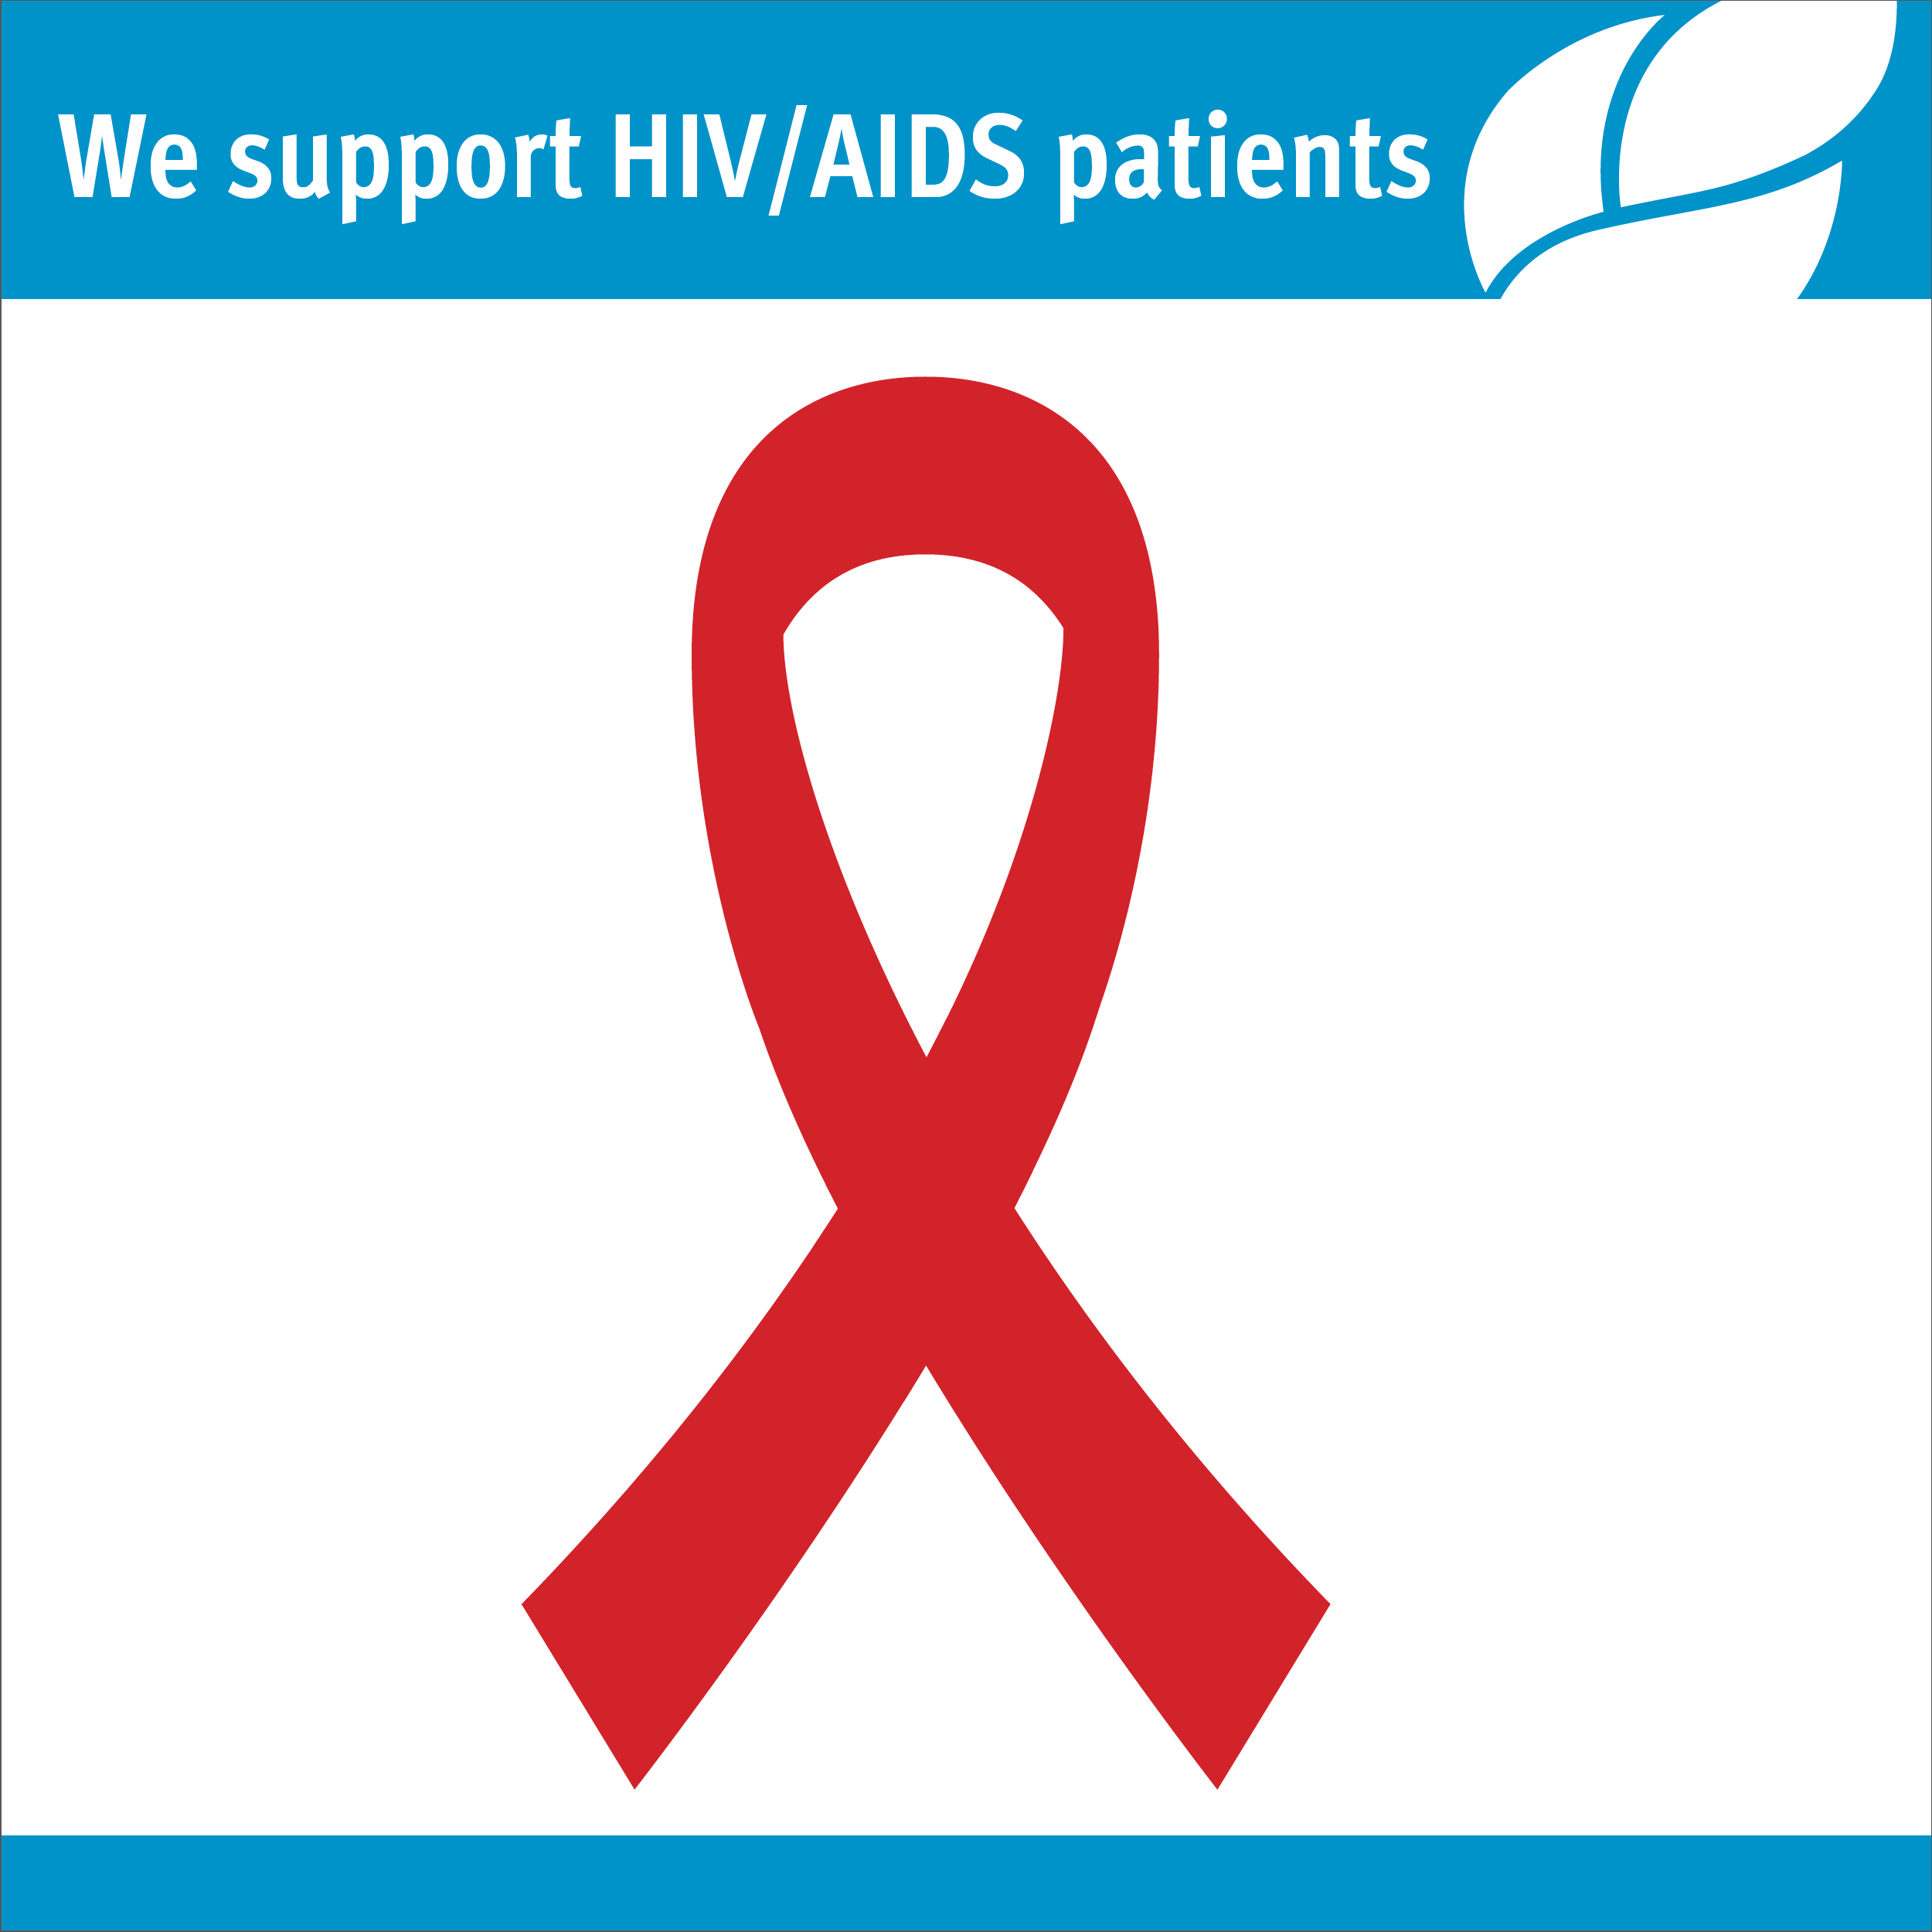 Hospice care for hivaids patients ohios hospice patients with hivaids who are experiencing the following challenges in care may consider hospice as an option that can be of assistance buycottarizona